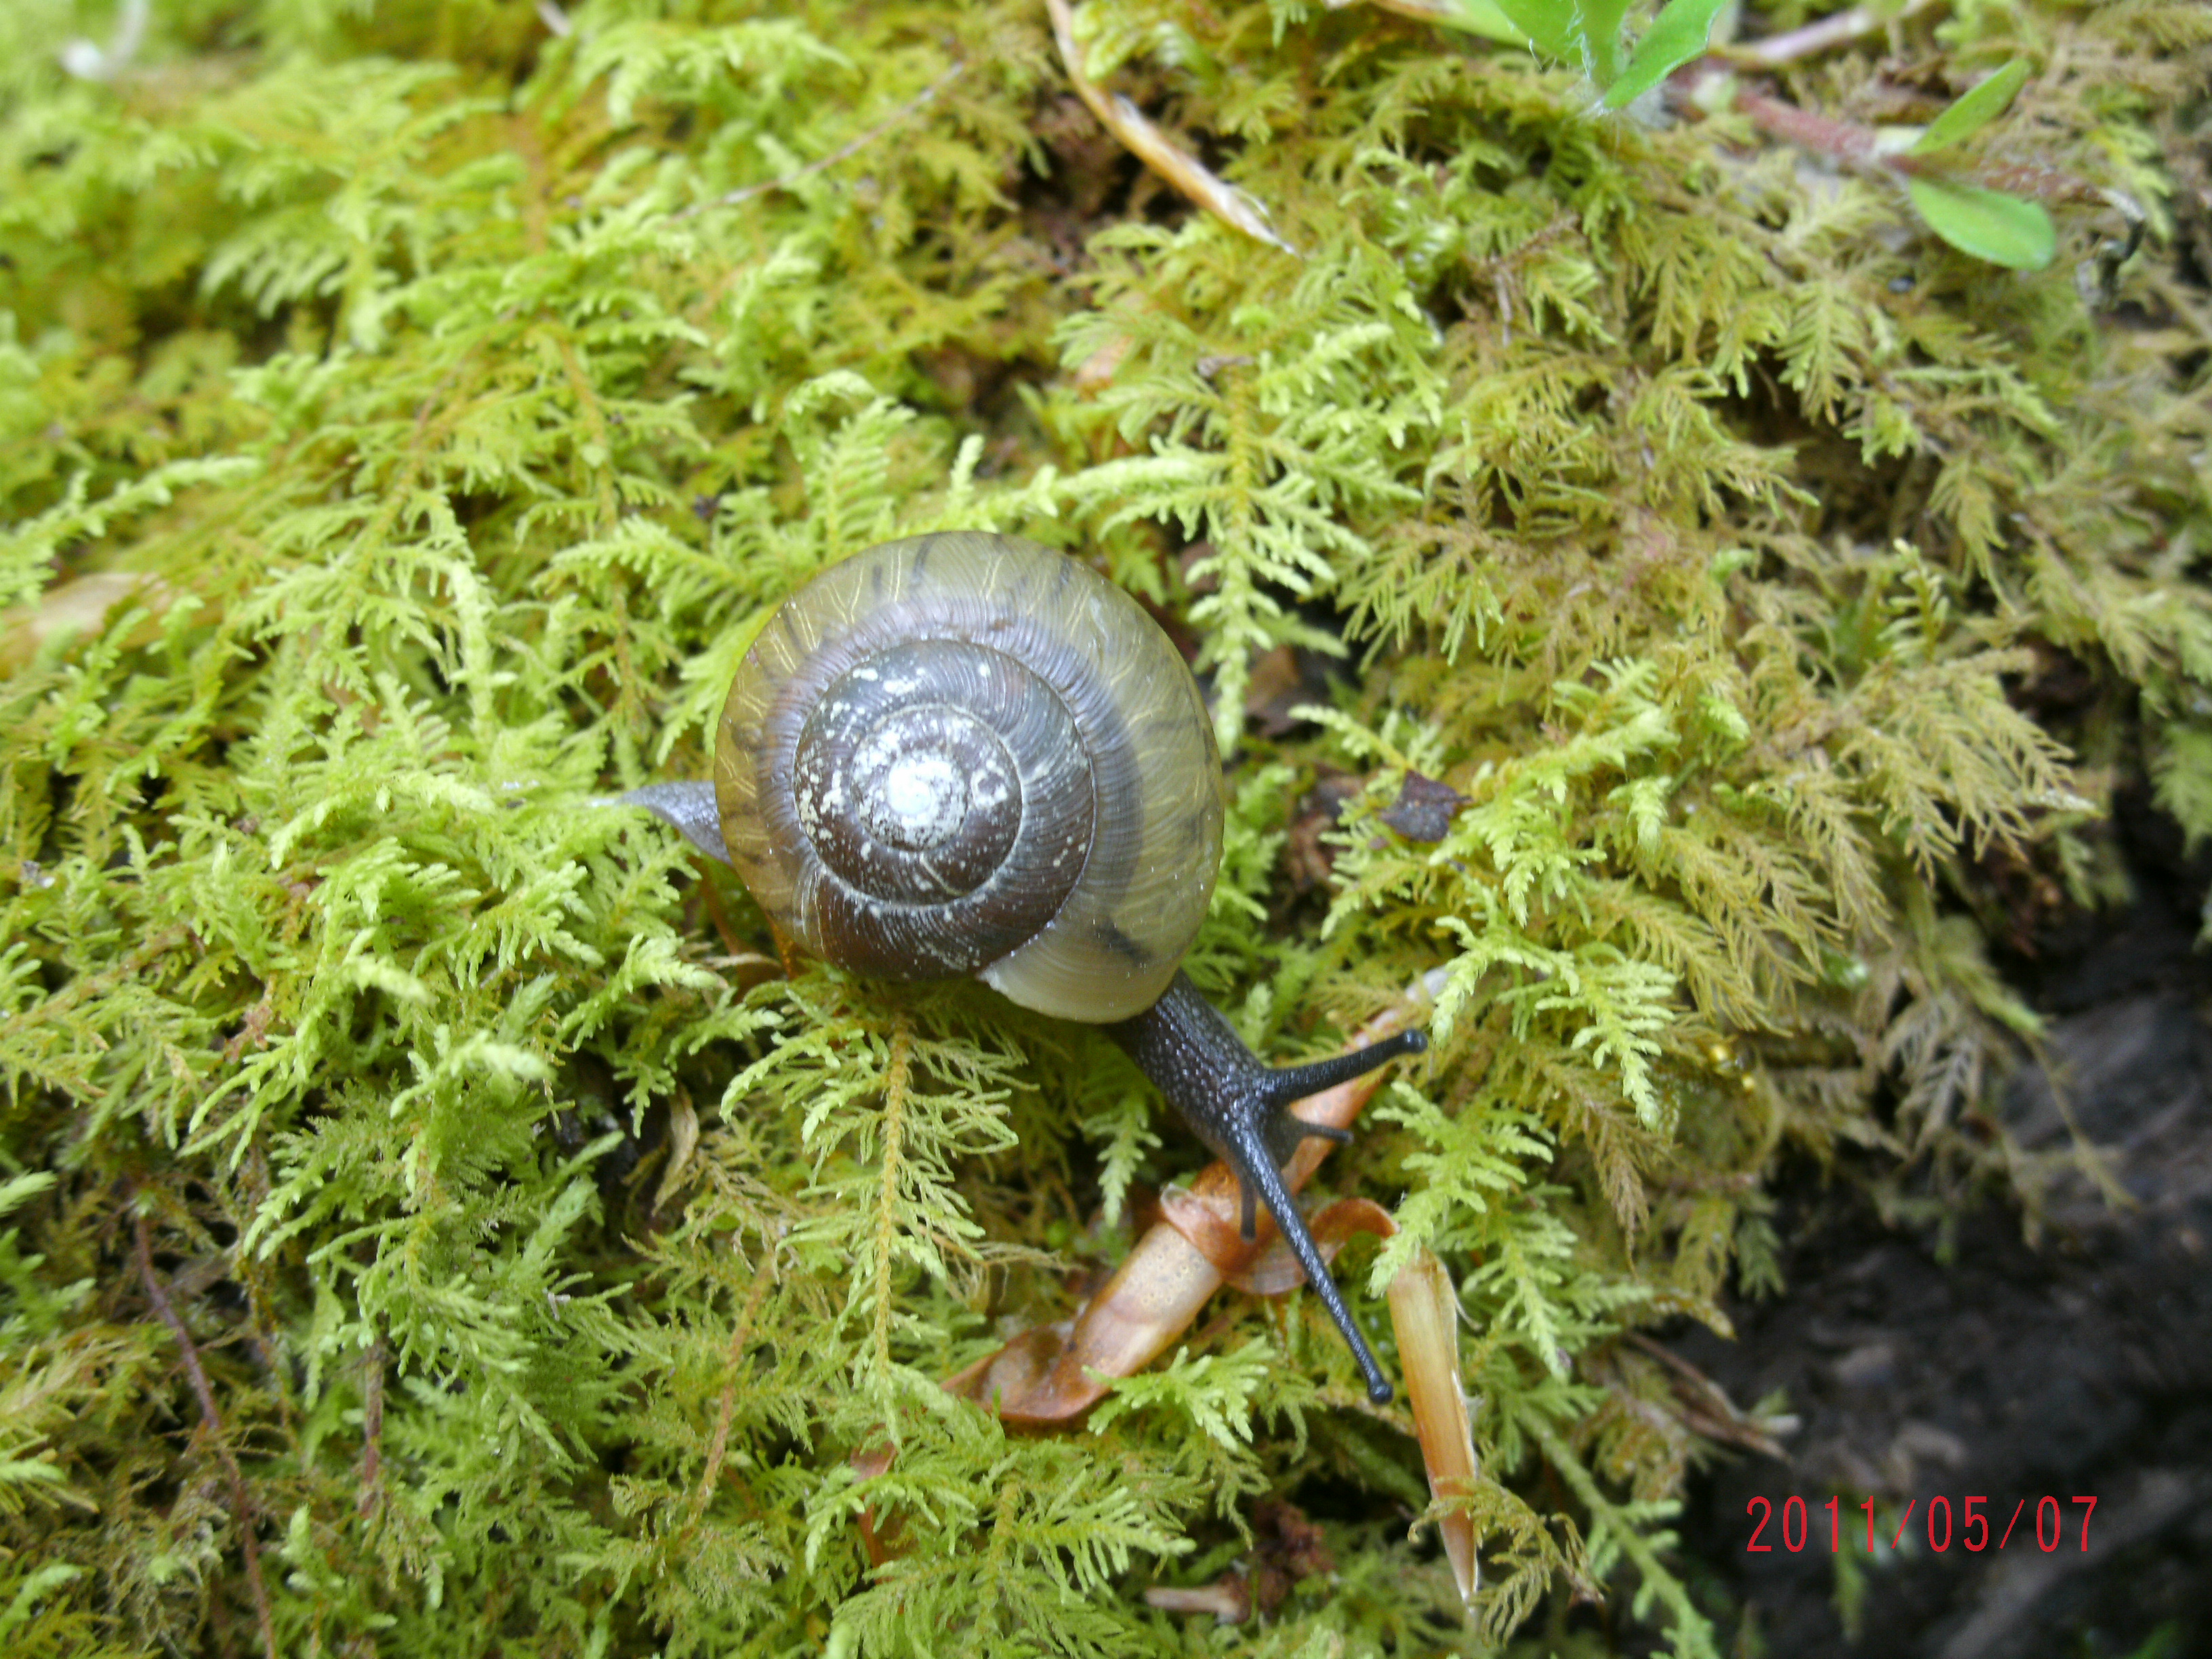 Snail on river moss, cleveland, WV